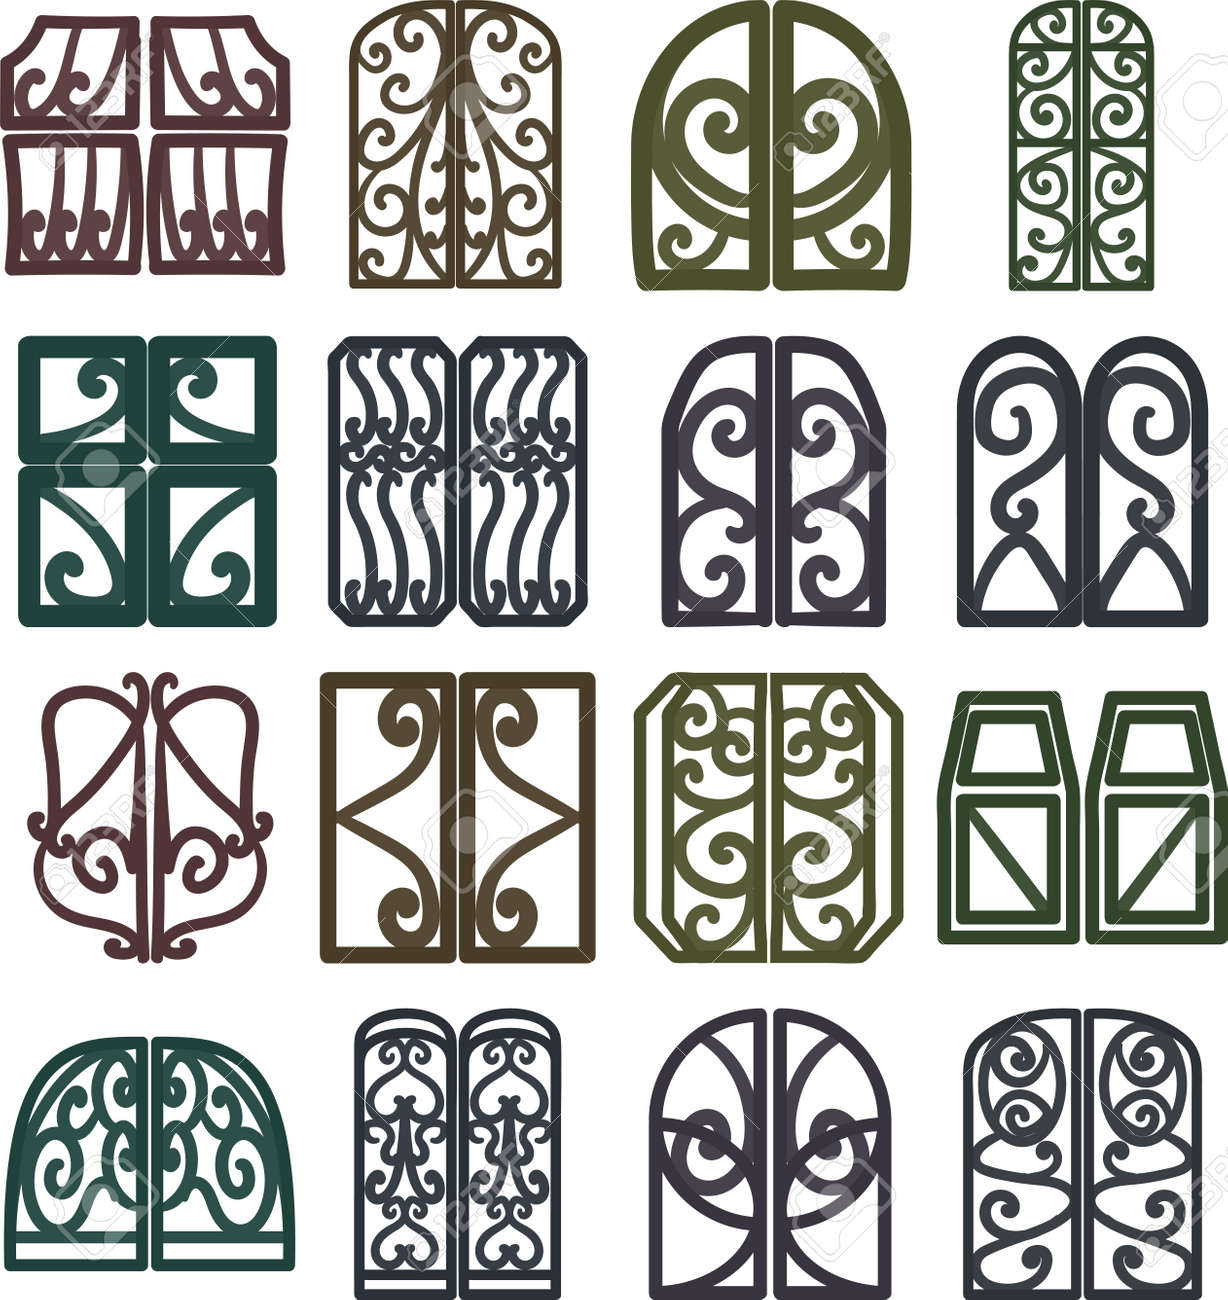 Fashionable window frame icons in various shapes - 168205038